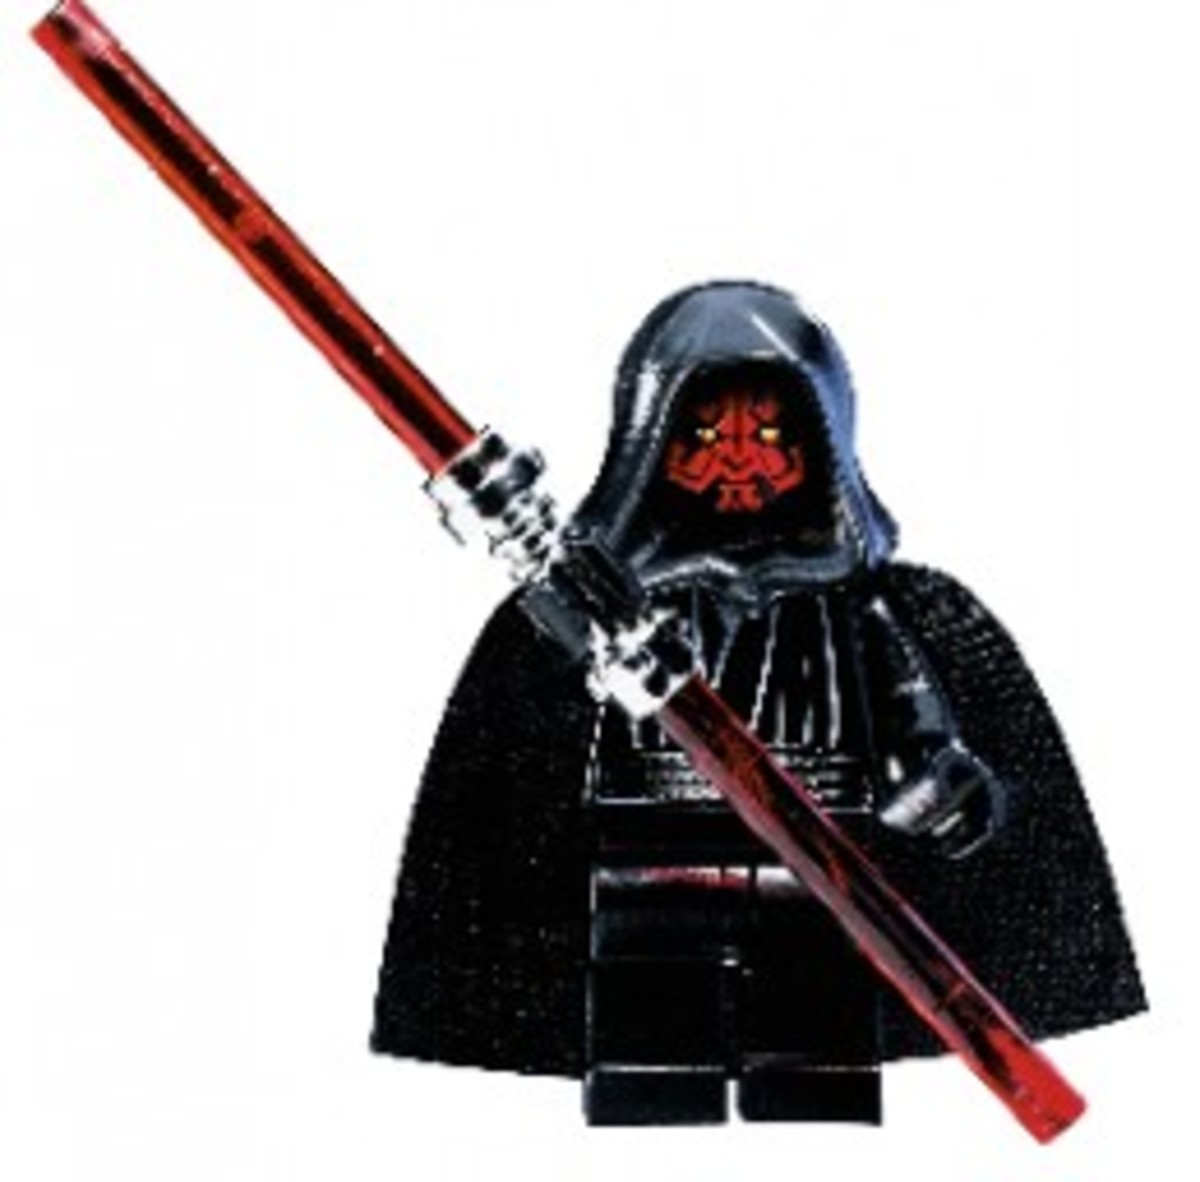 Lego Star Wars Sith Infiltrator 7151 Minifigures